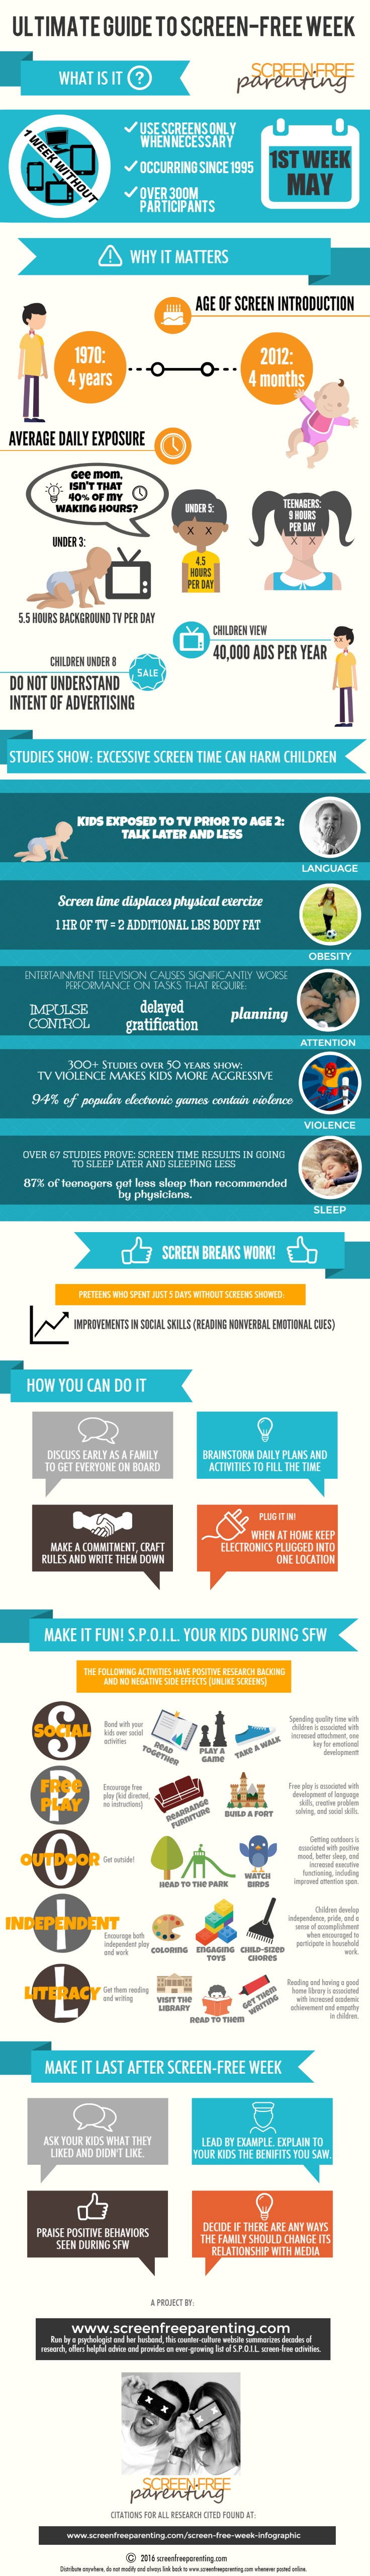 Screen-Free-Parenting-guide-to-screen-free-week-infographic-